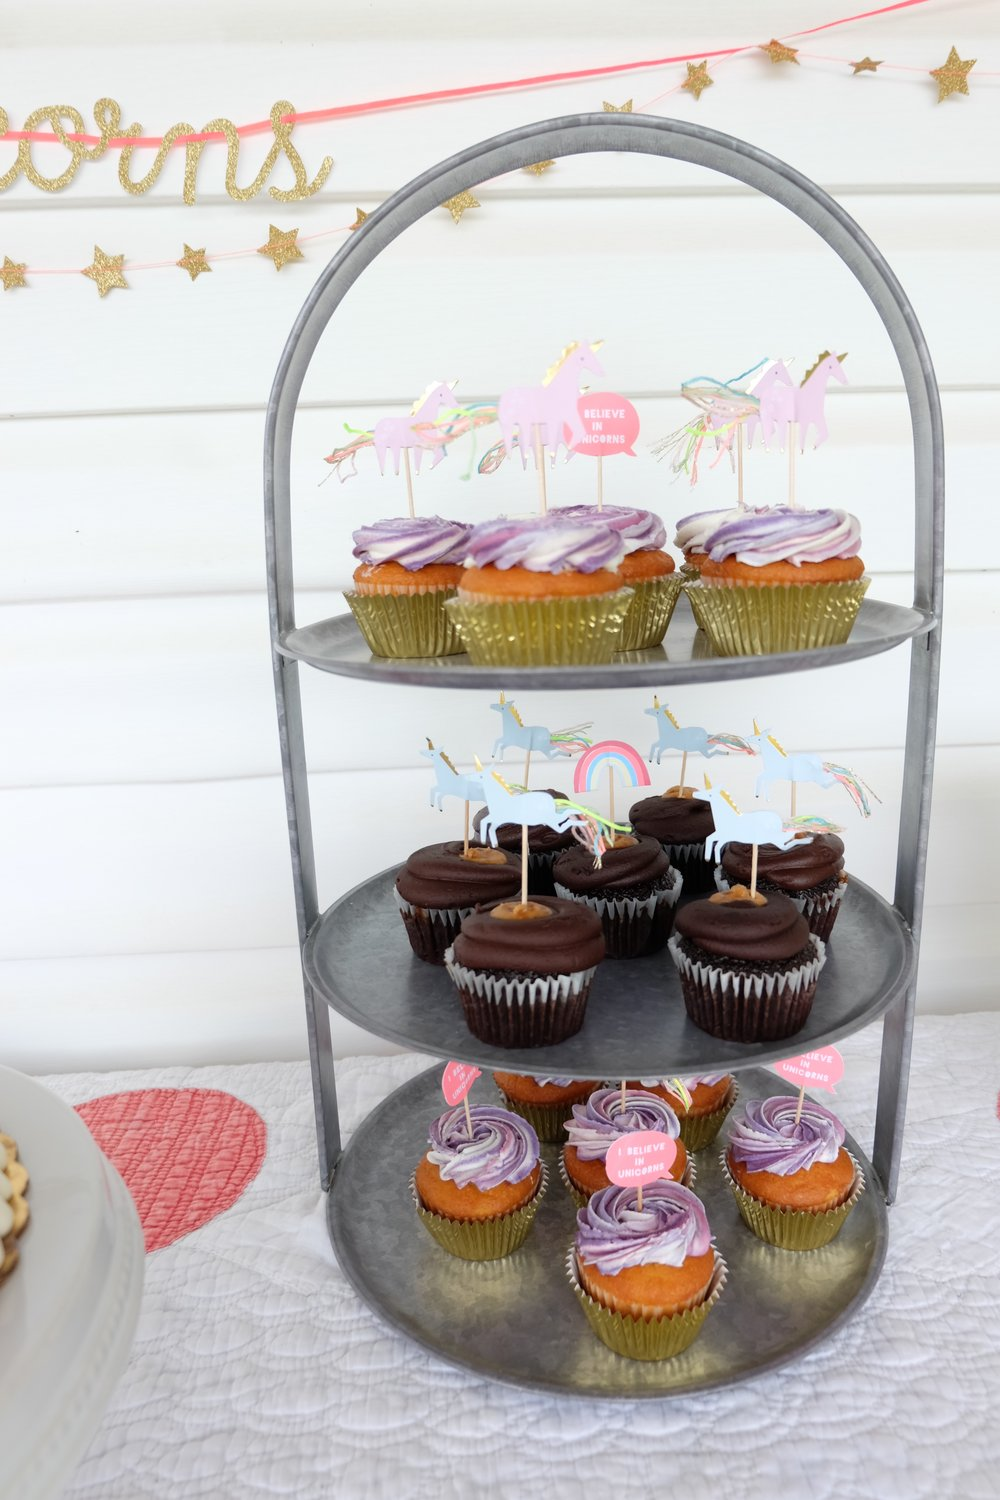 One of my favorite 3 tier trays and it's from Crate & Barrel. It gives such a rustic feel.  The cupcakes were a huge hit! All the decorations are from Land of Nod & Hooray Everyday!! These sweet unicorn cupcake minis are from Land of Nod too!